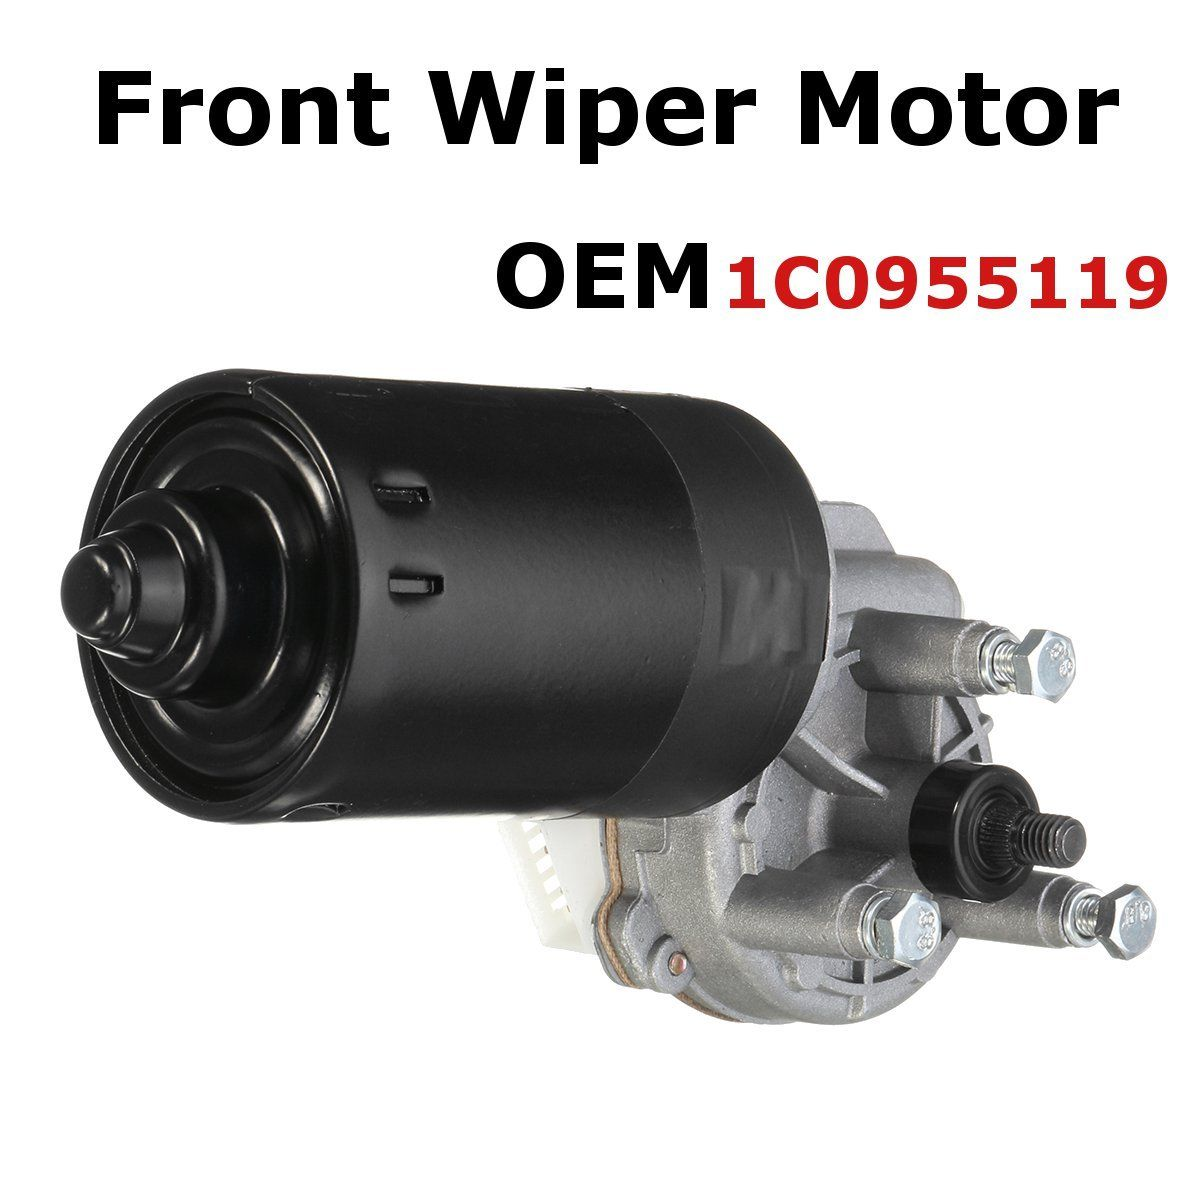 Windscreen-Wiper-Motor Seat Golf New Beetle Audi Skoda for 1pcs Front A3 Passat Bora title=